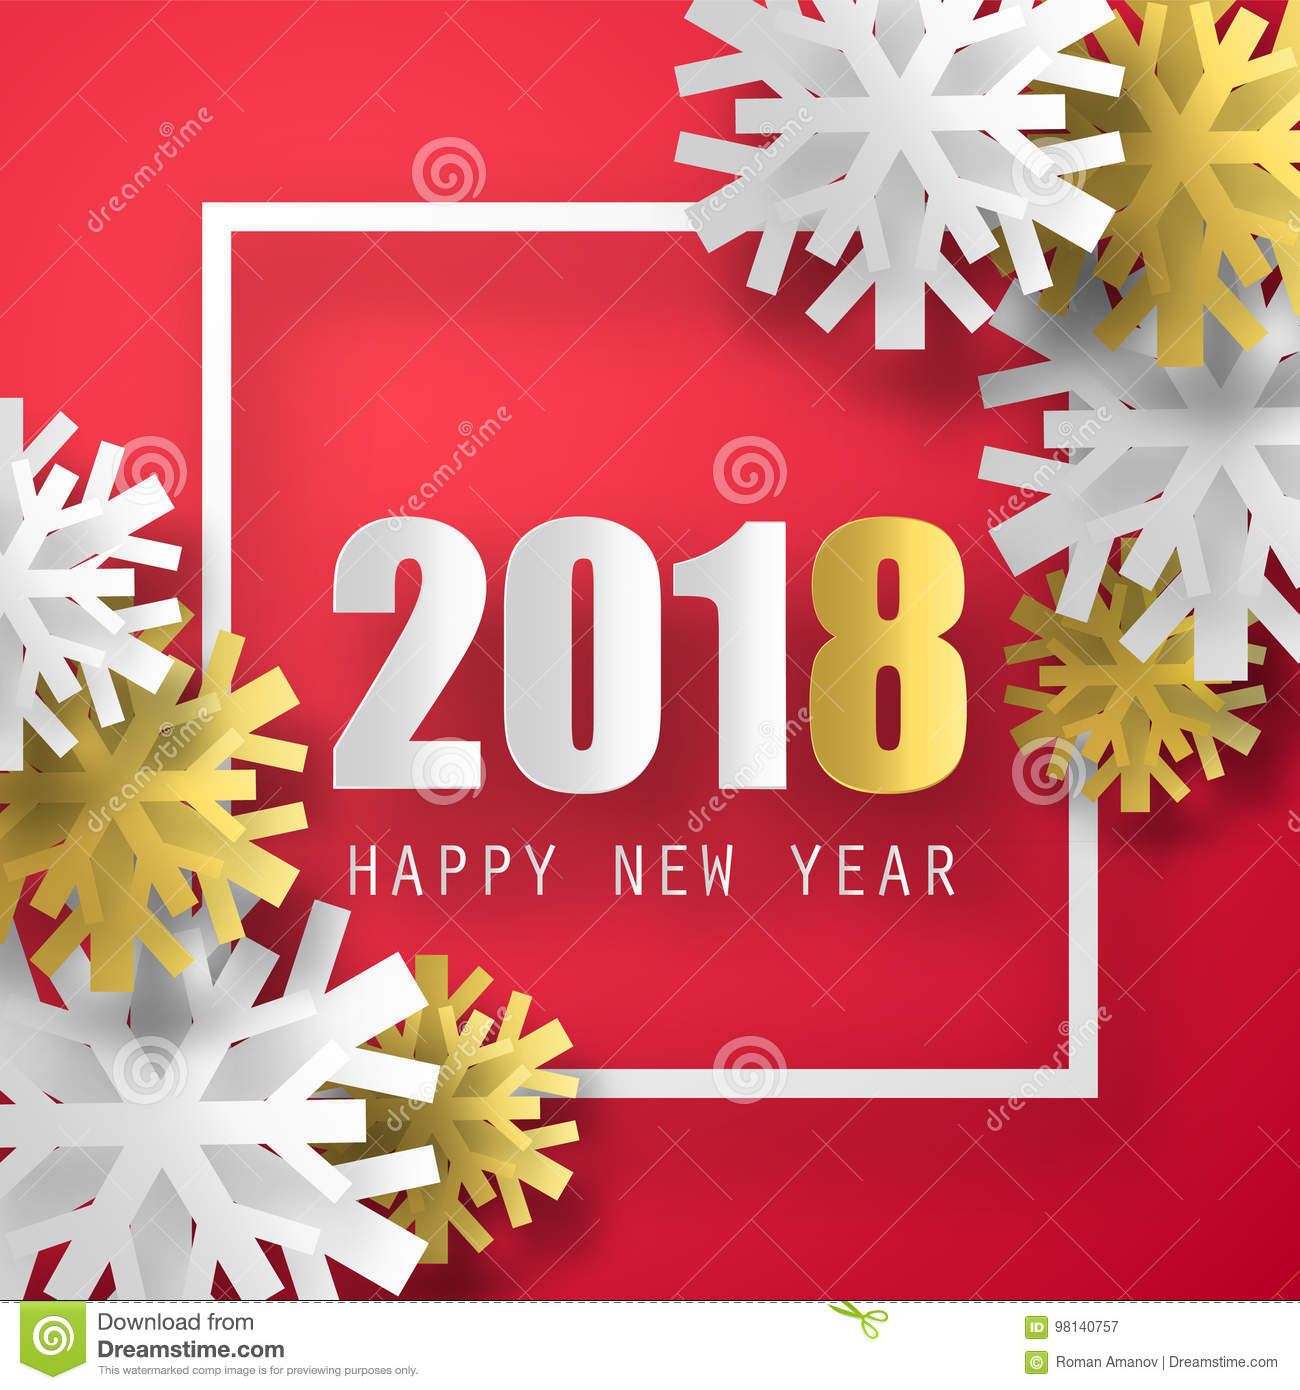 2018 vector background happy new year greeting card christmas royalty free vector download 2018 vector background happy new year greeting card christmas poster m4hsunfo Choice Image